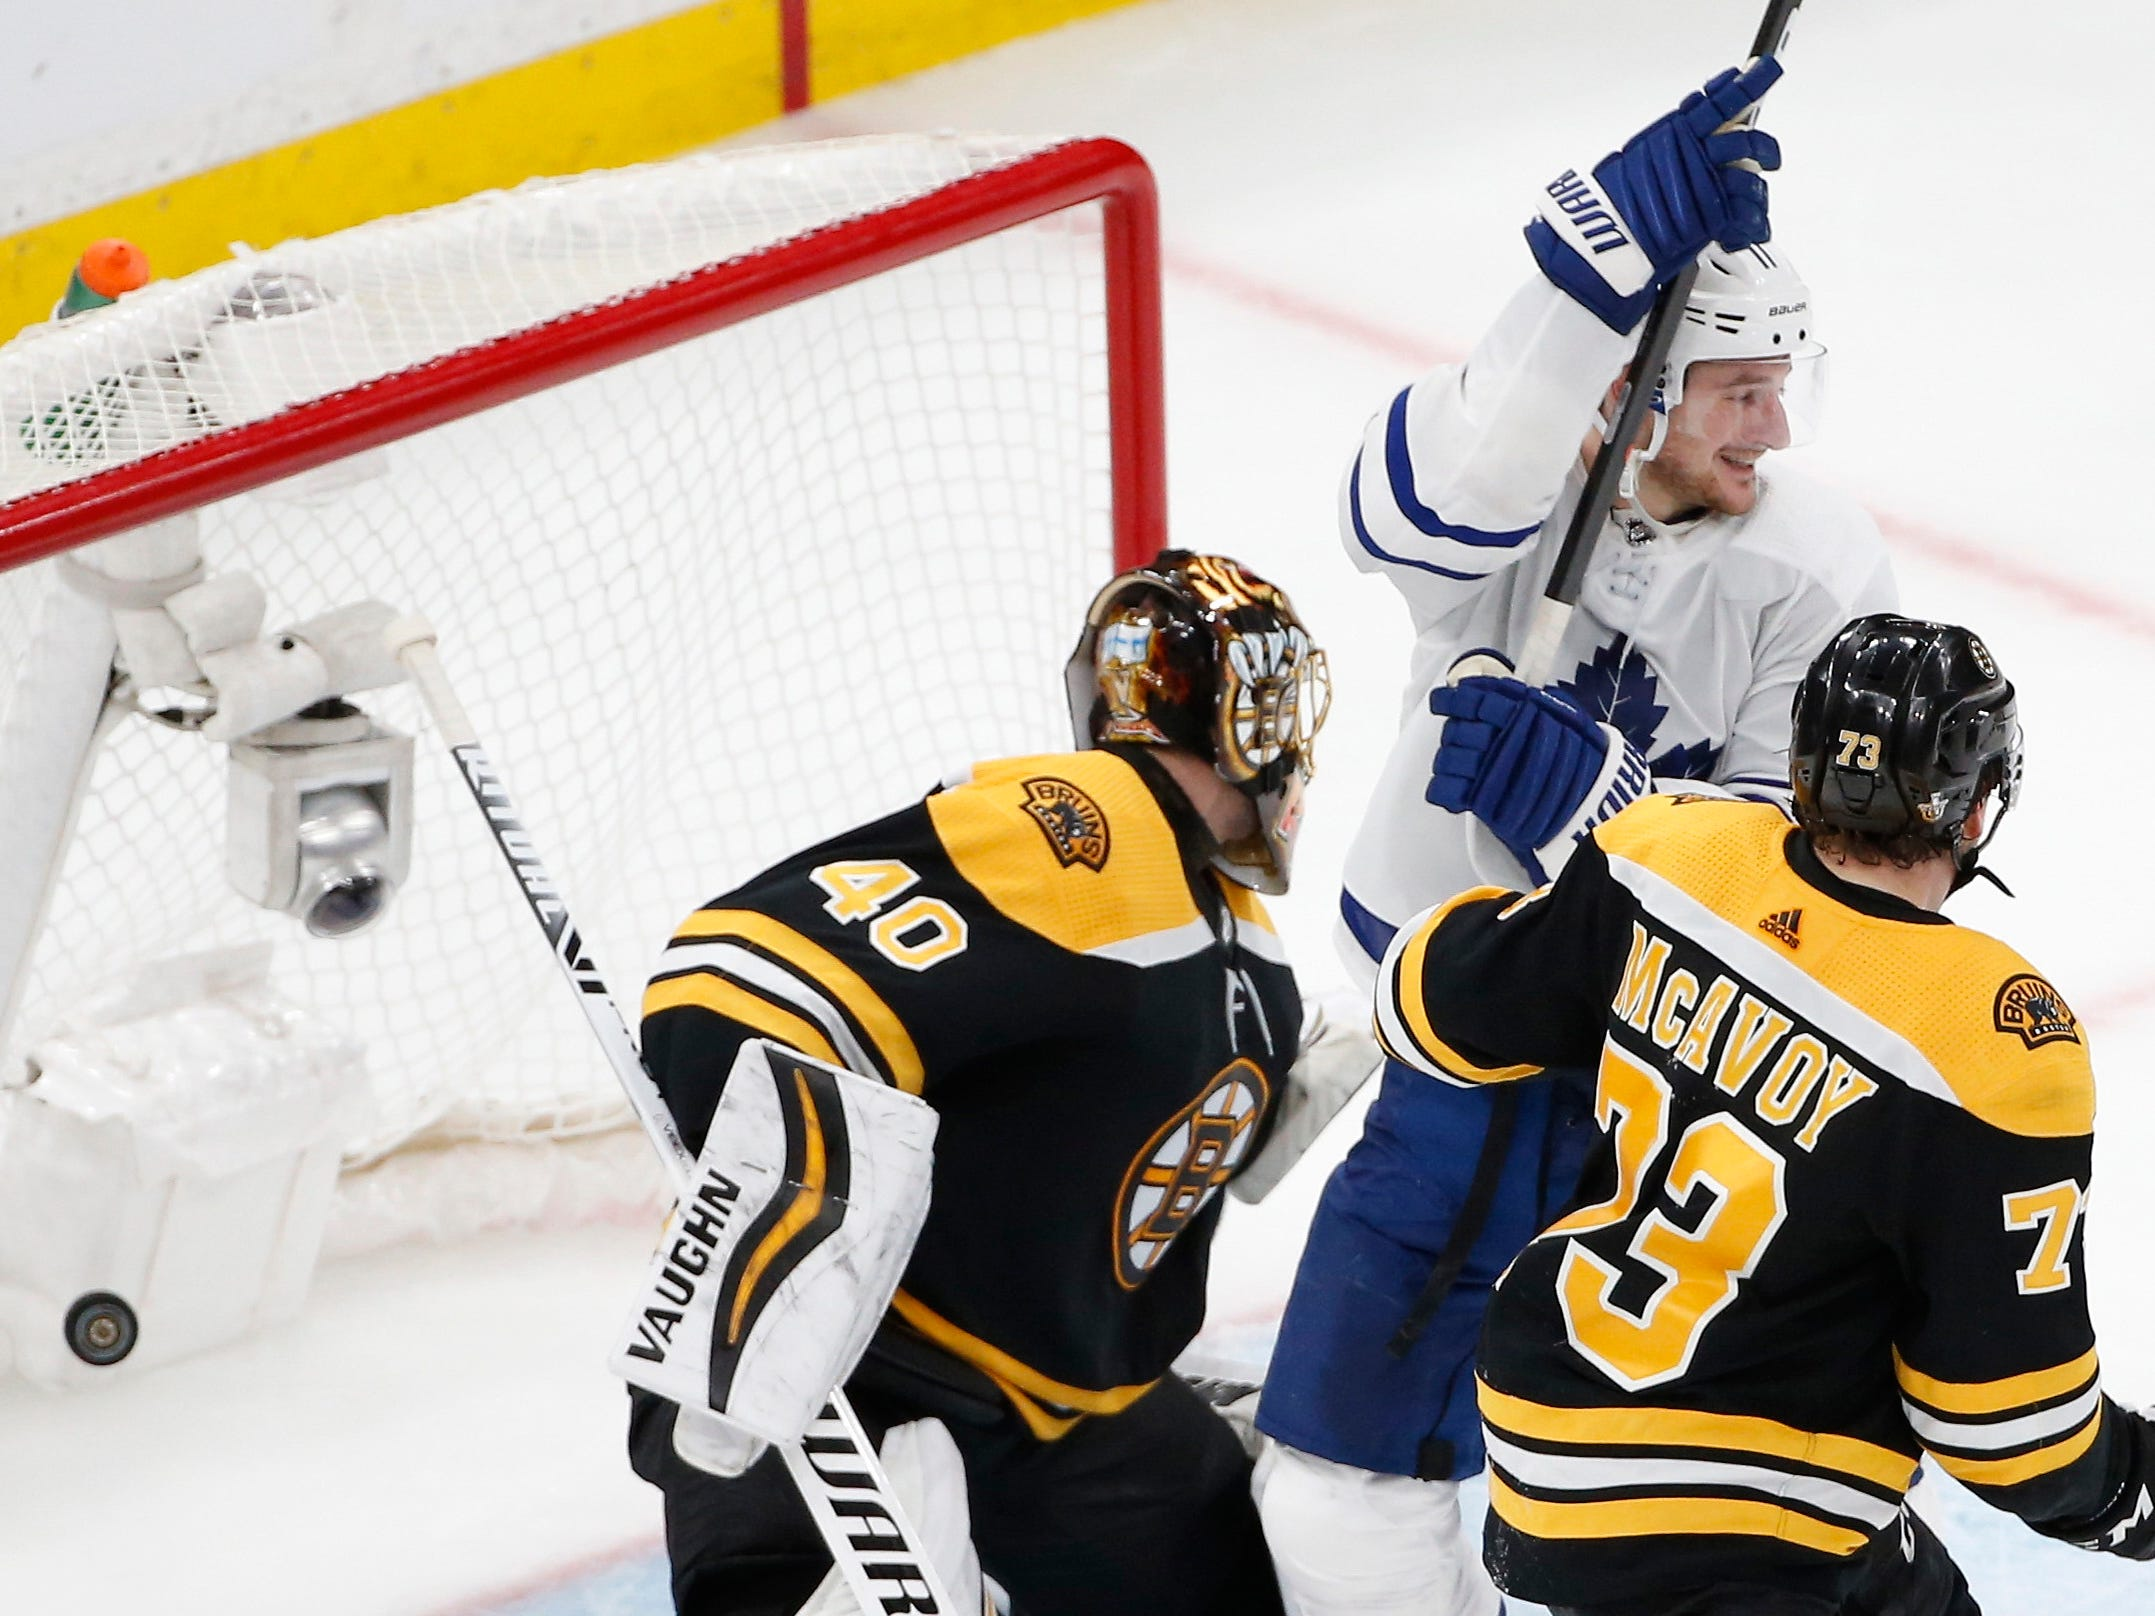 First round: Maple Leafs left wing Zach Hyman celebrates a goal by Auston Matthews in Game 5. The Bruins challenged whether Hyman interfered with Bruins goalie Tuukka Rask, but the NHL ruled it a good goal.